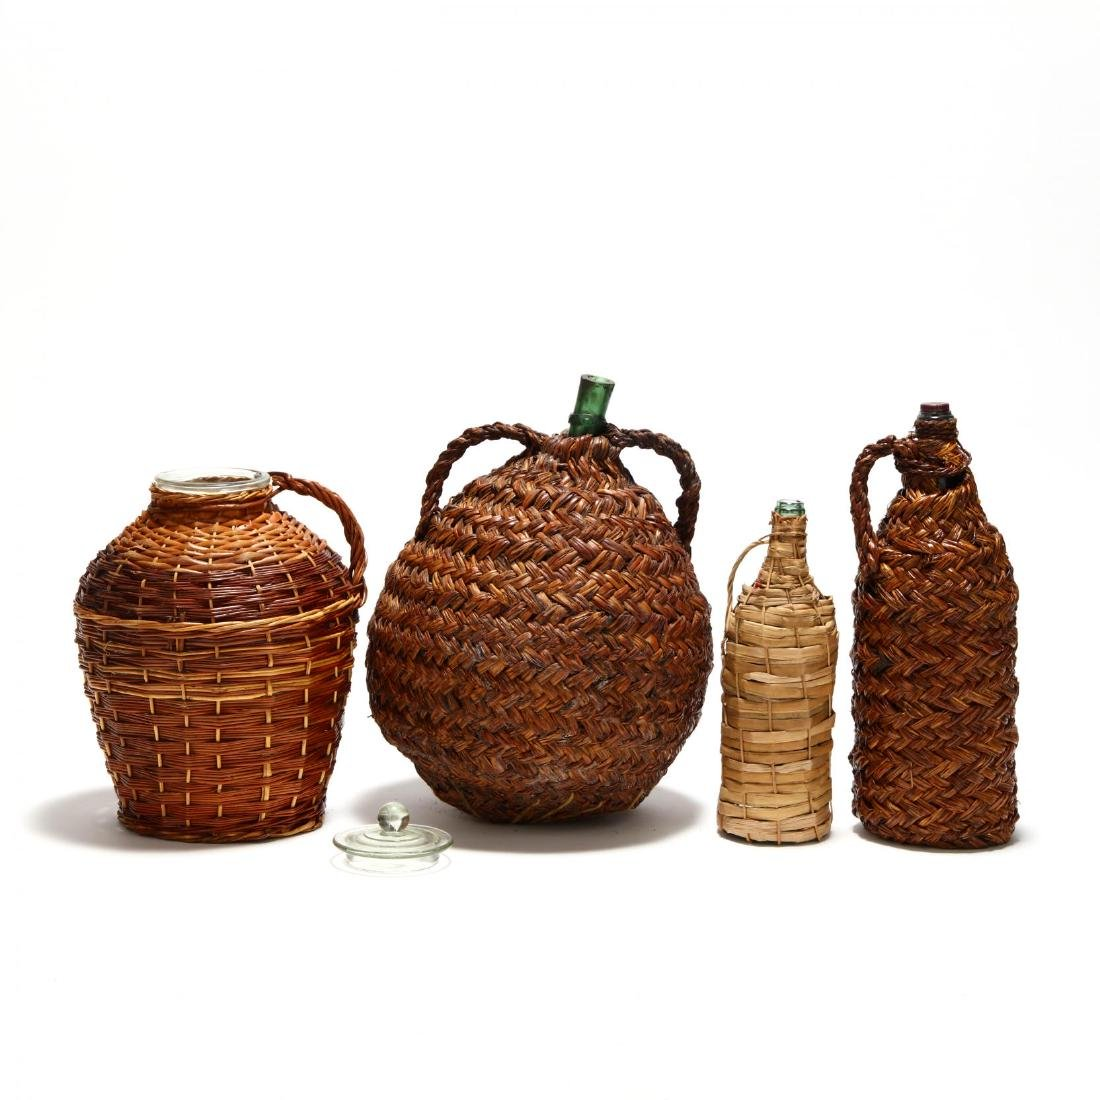 Group of Cypriot Wine Jugs - 4